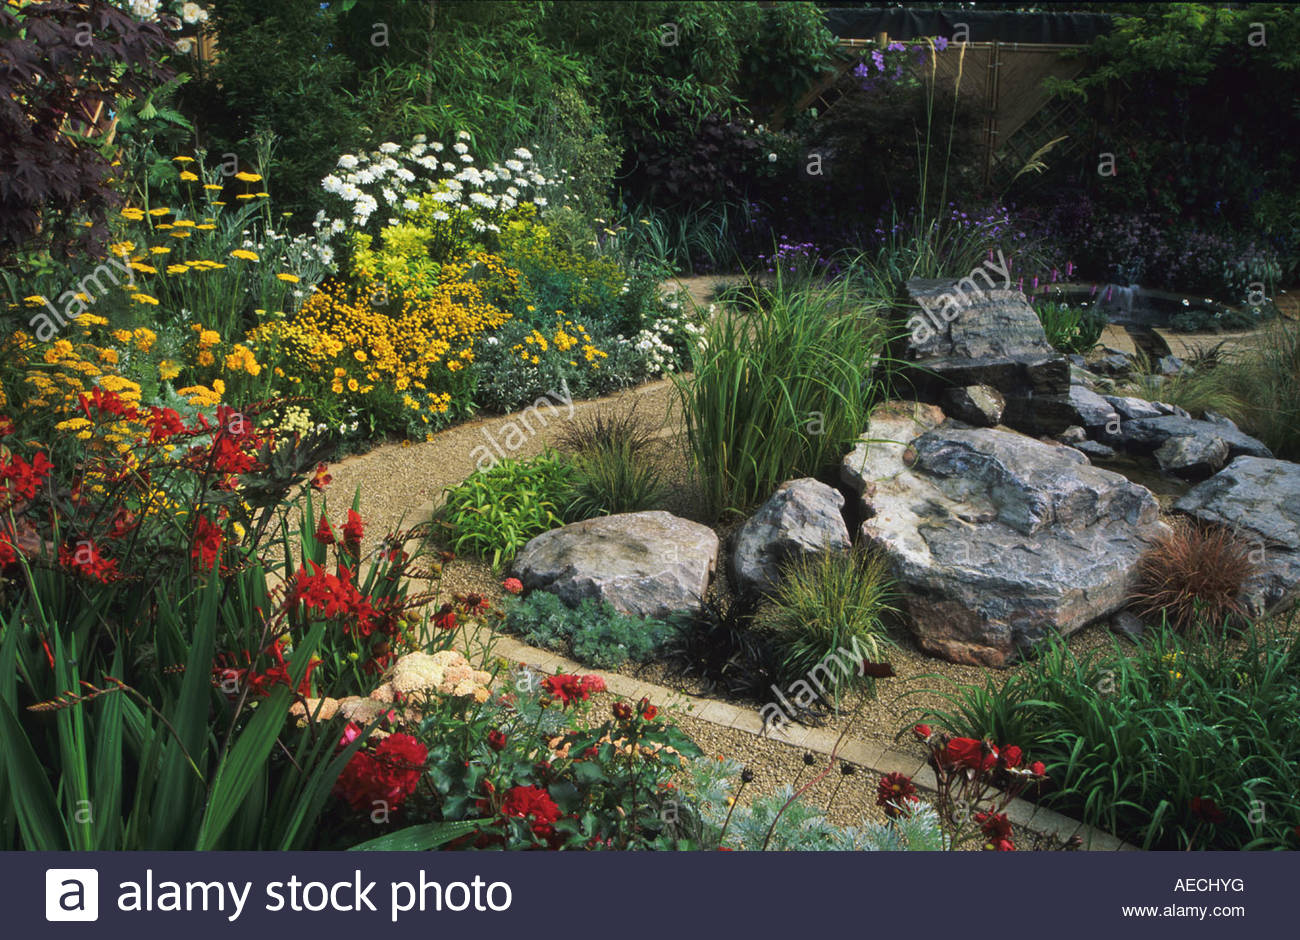 Feng Shui Garden Design Pamela Woods Serpentine Path And Flower Beds Rock  Garden